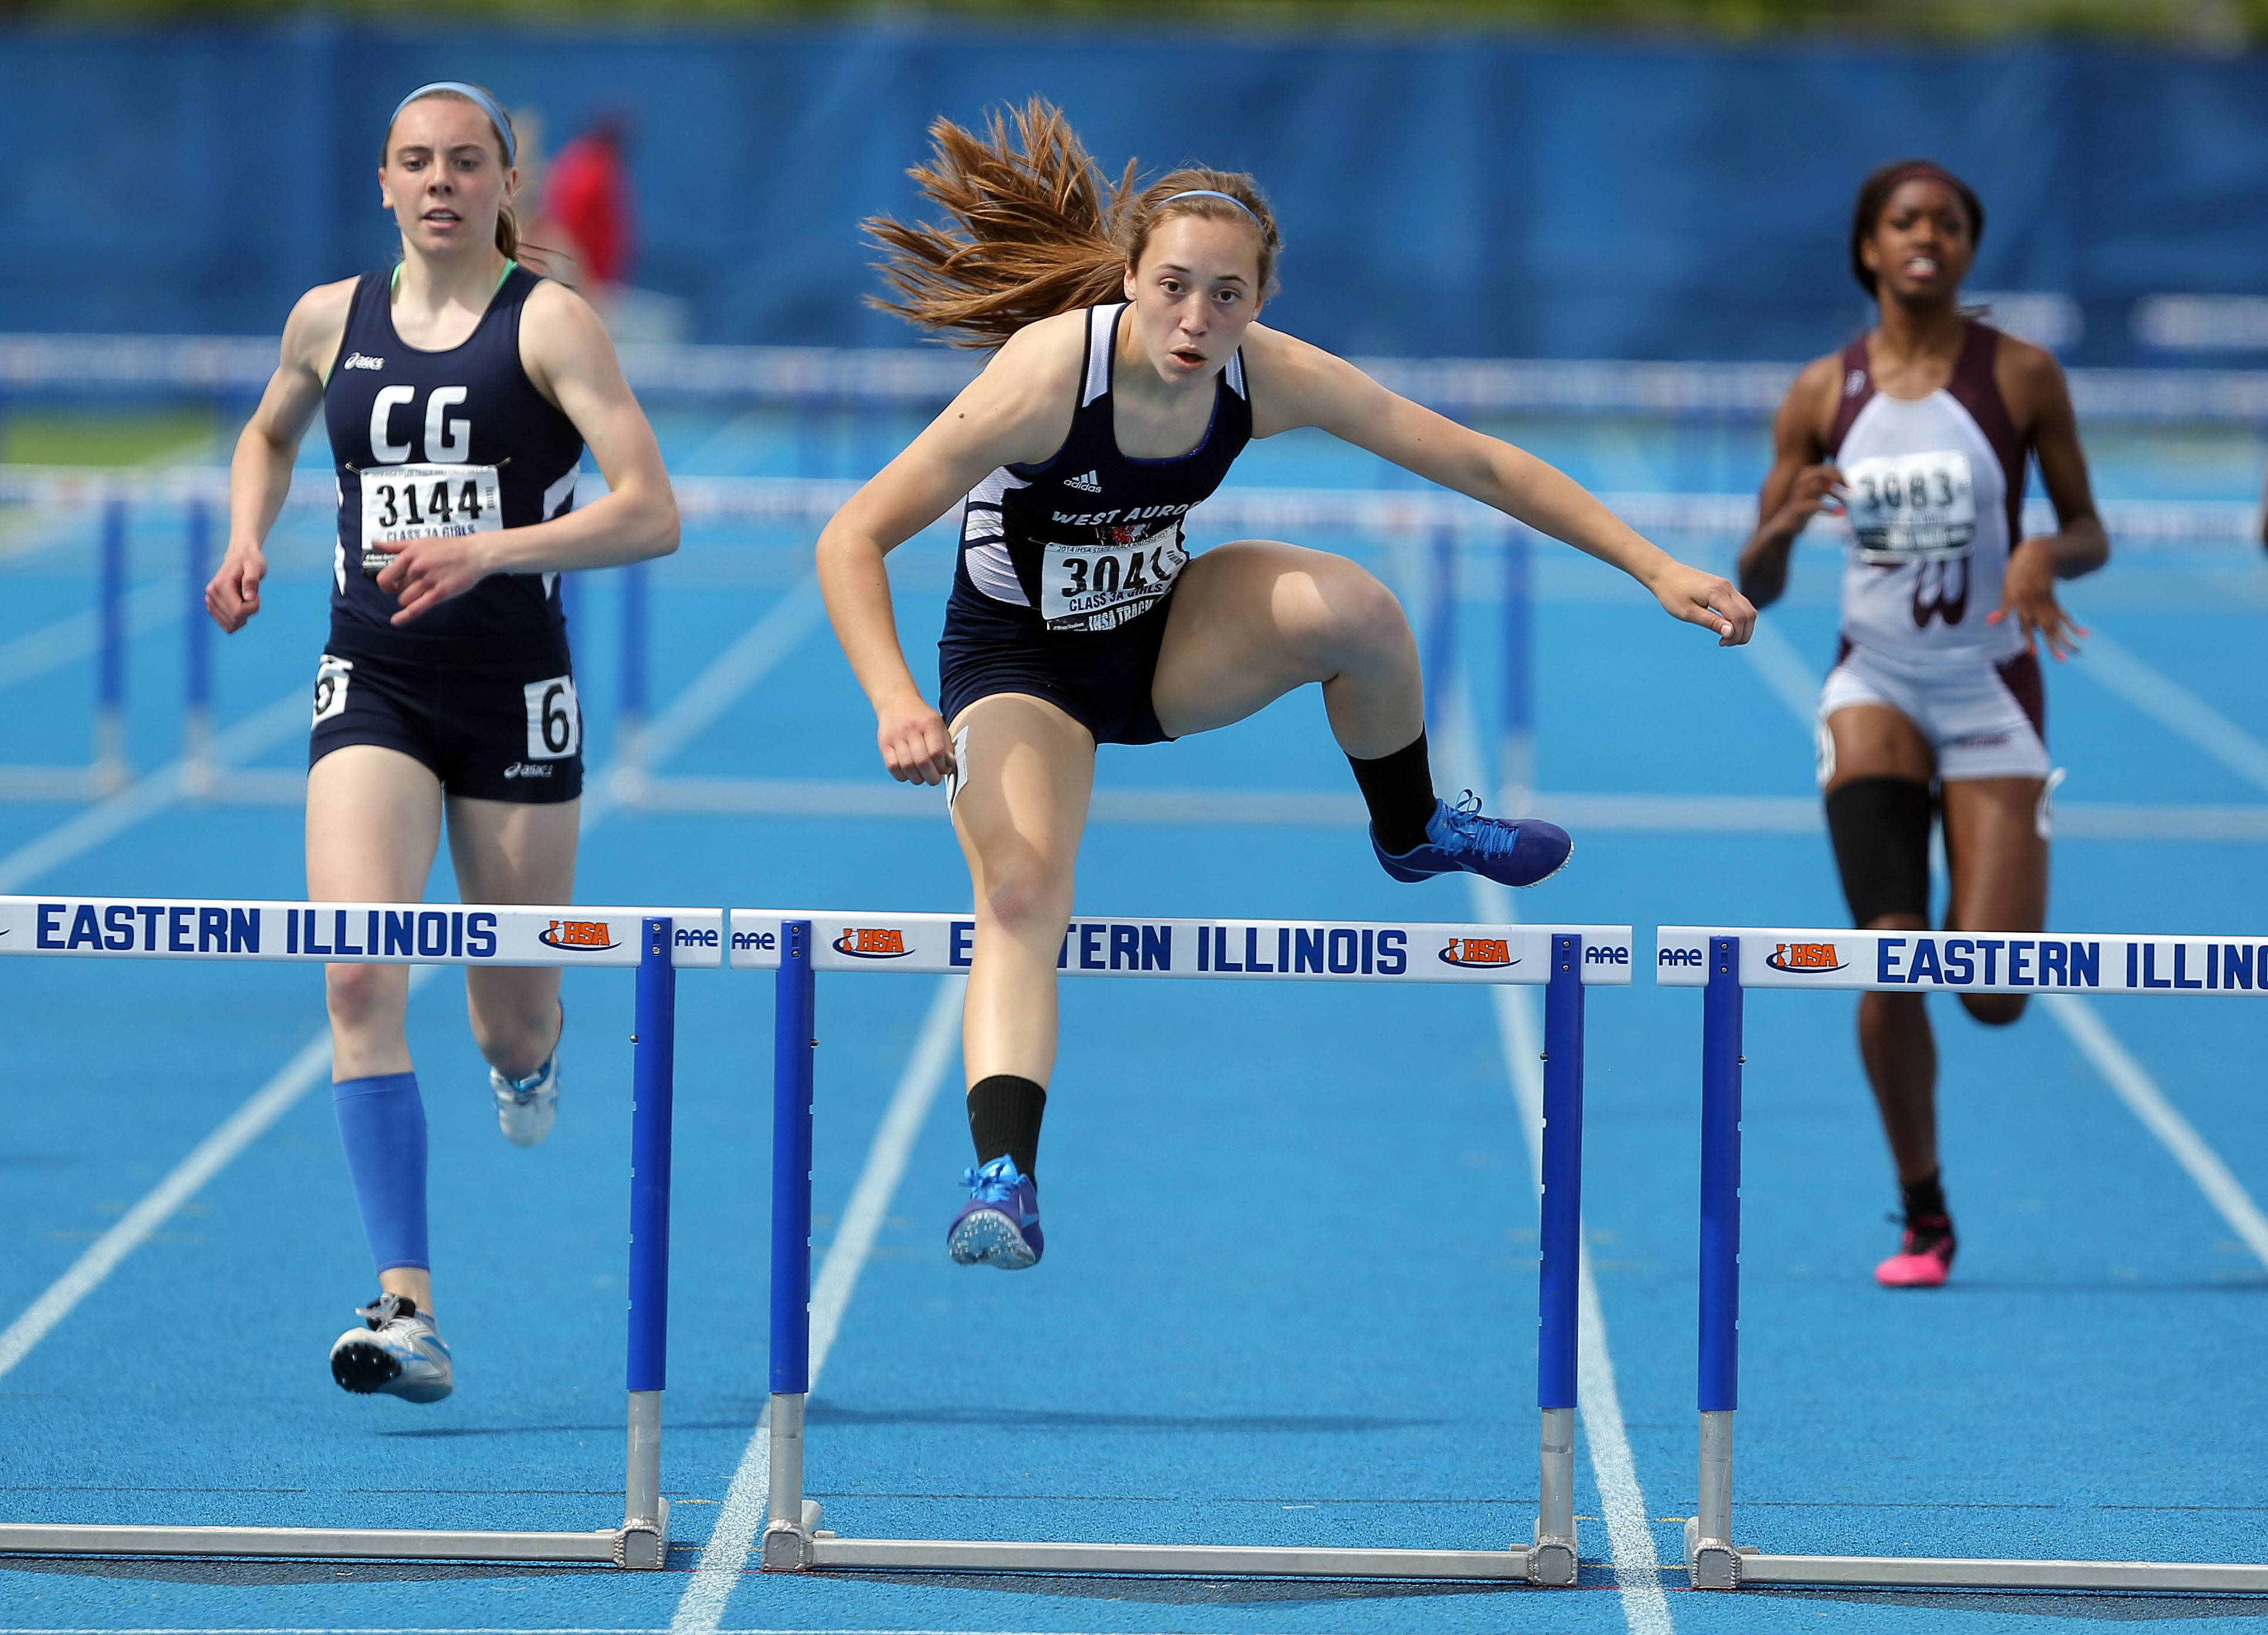 West Aurora's Emma Spagnola, center, clears the final hurdle in the class 3A 300-meter low hurdles during the girls track and field state finals at Eastern Illinois University in Charleston Saturday.